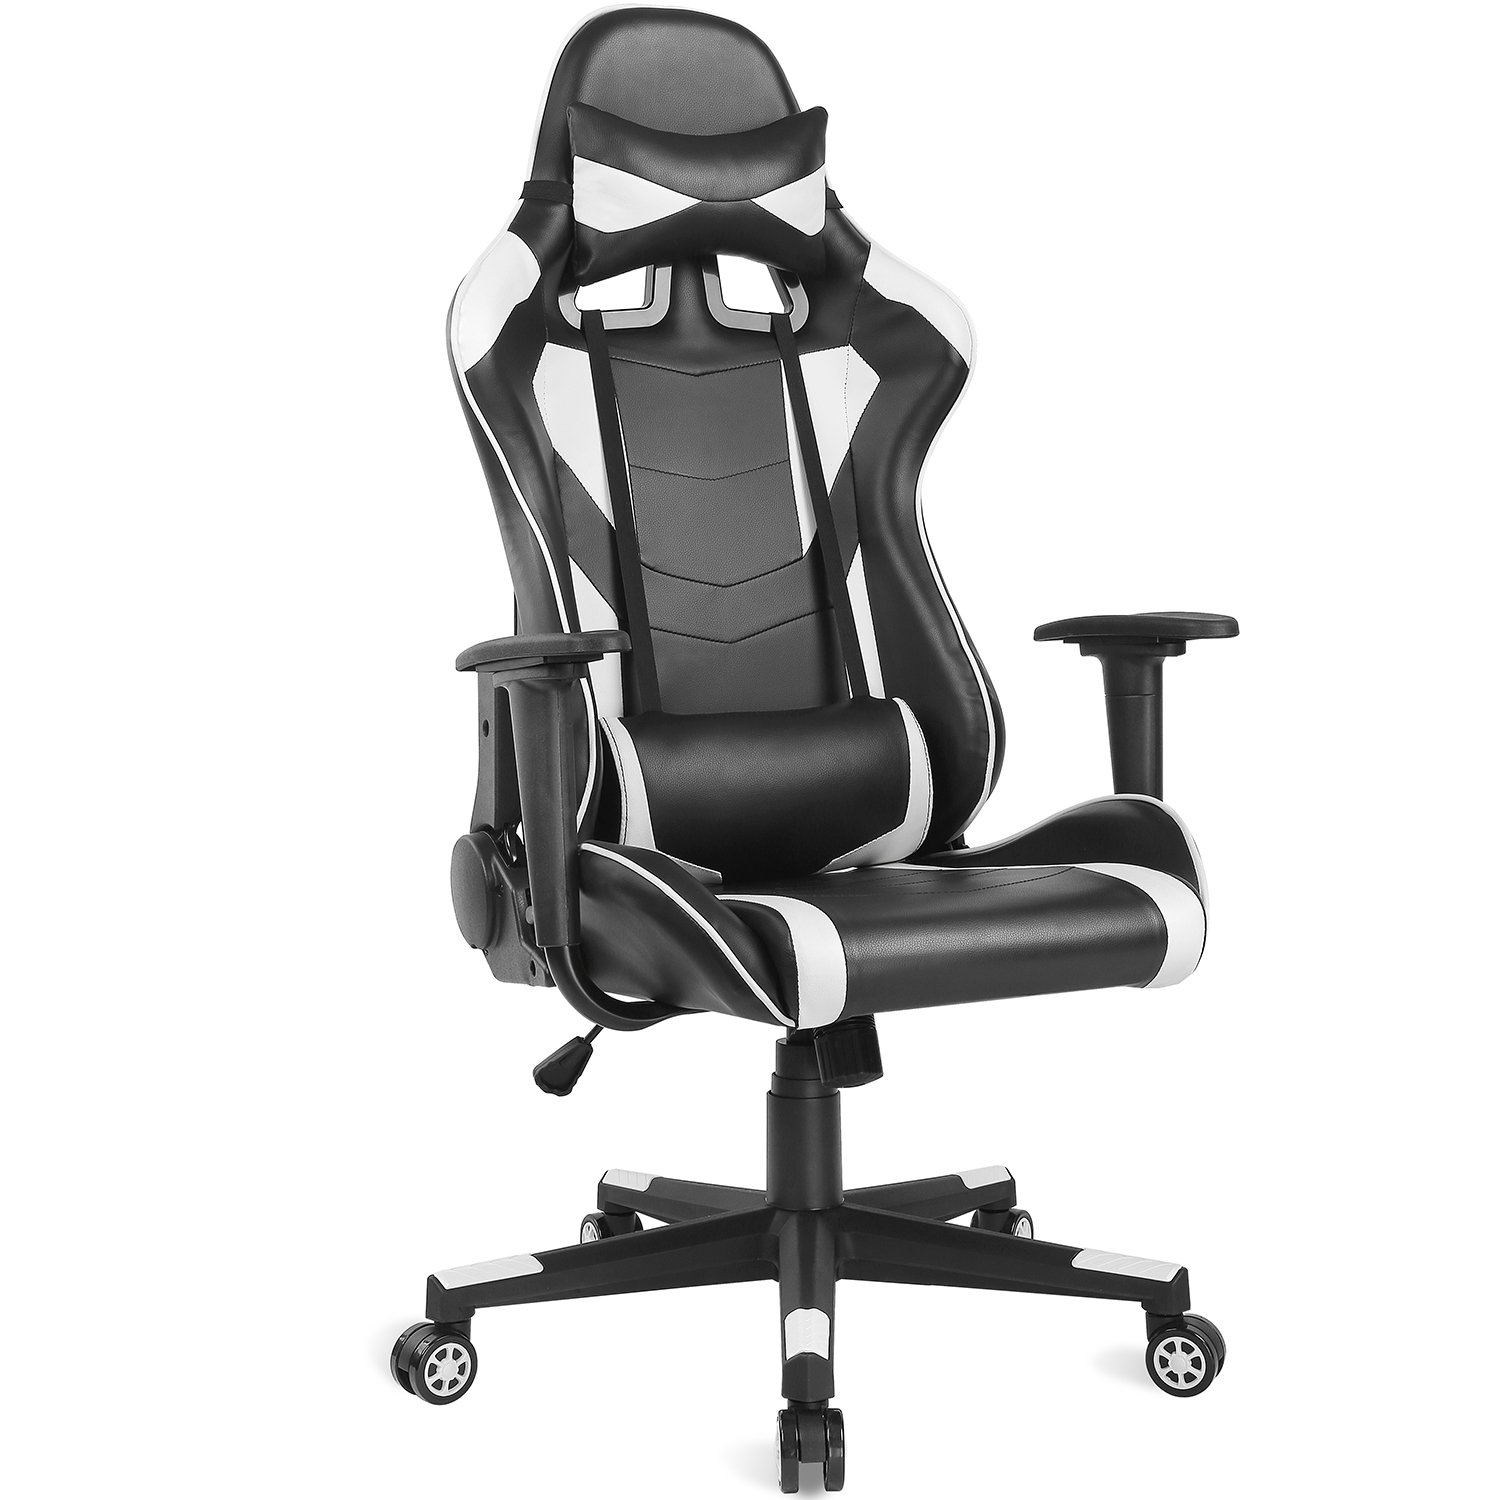 Ergonomic Gaming Chair Racing Style Adjustable High-Back PU Leather Office Chair Computer Desk Chair Executive and Ergonomic Style Swivel Video Chair with Headrest and Lumbar Support-White